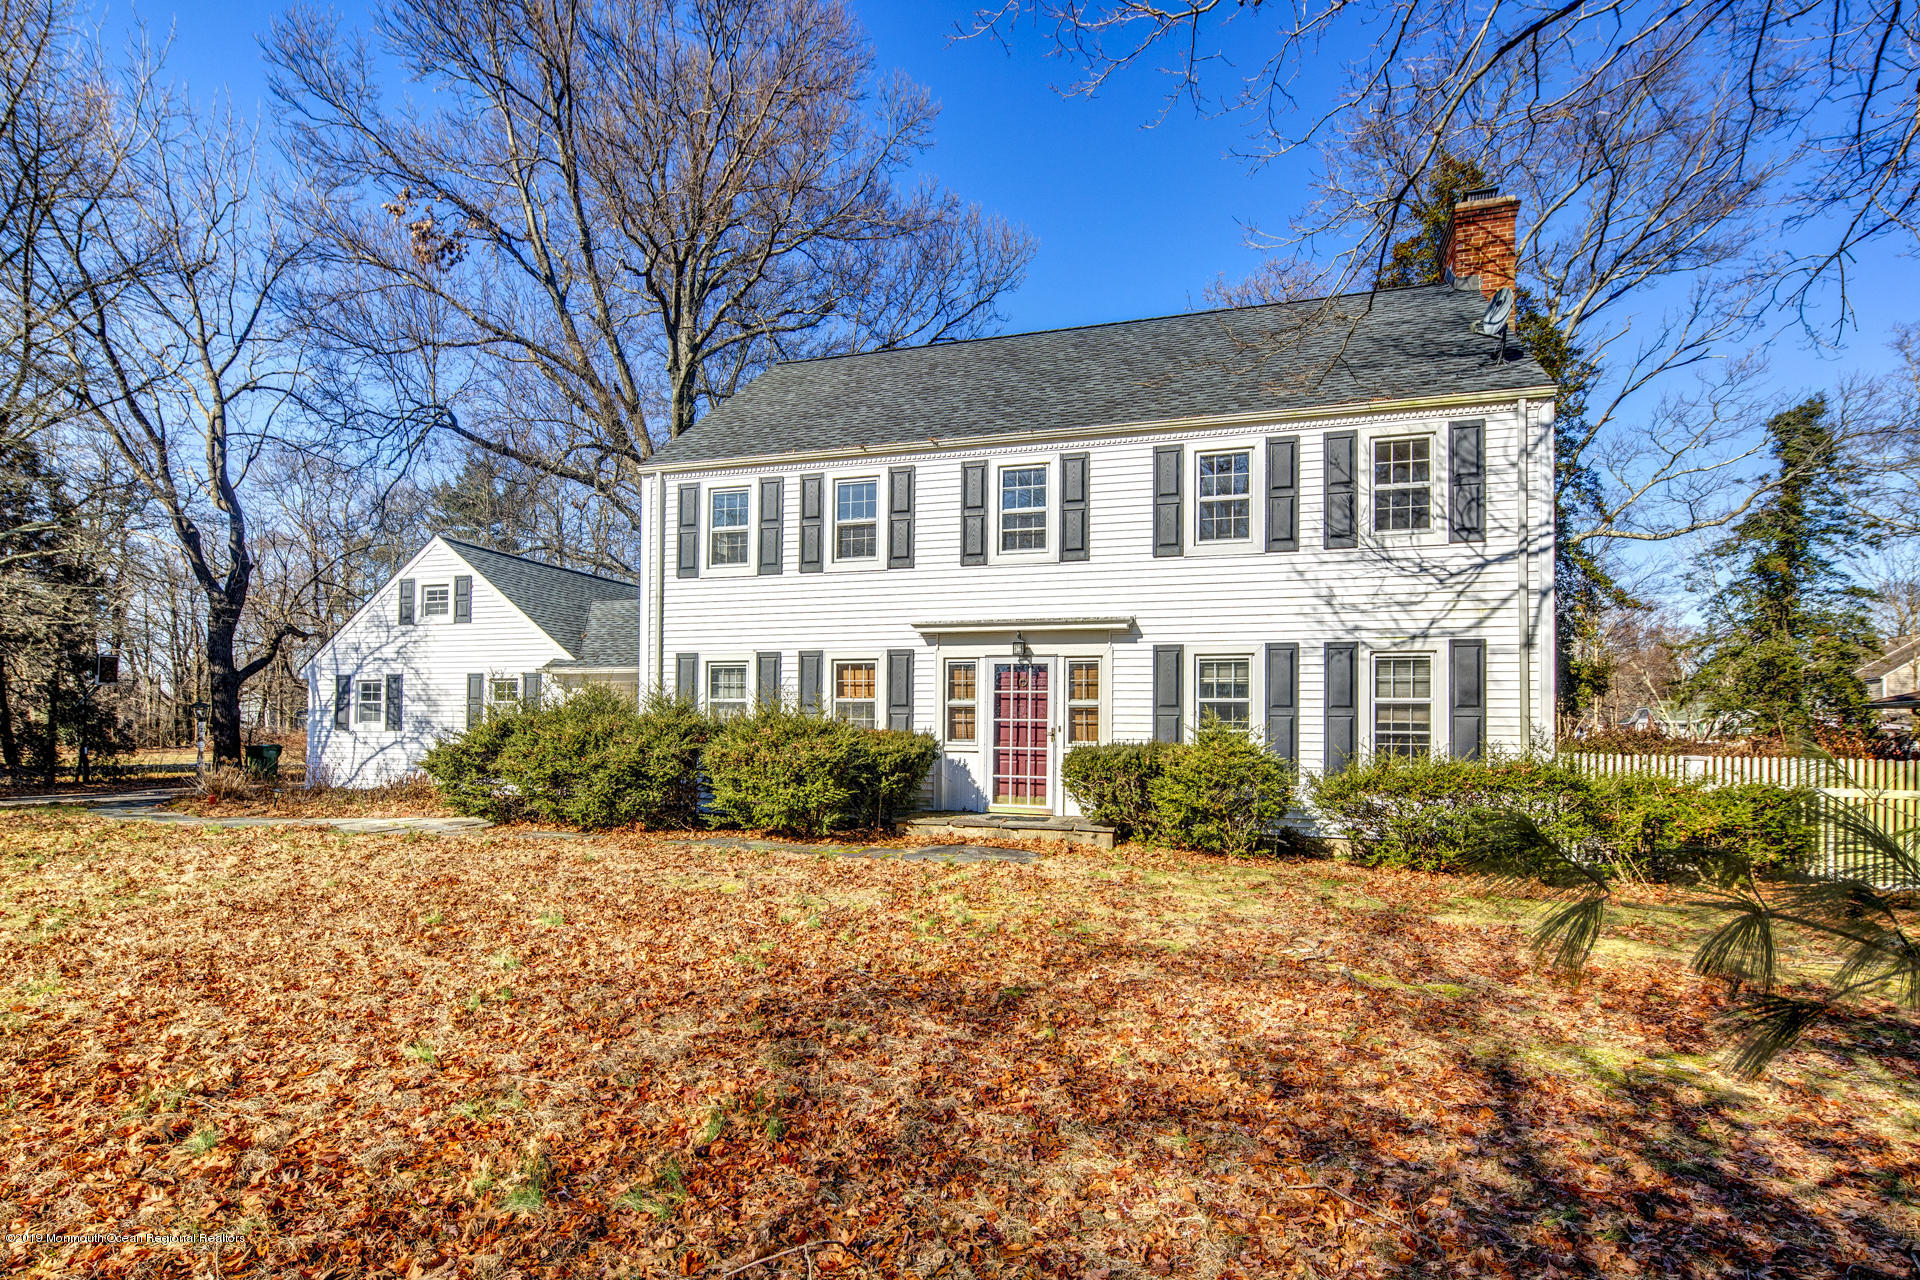 Attention all Doctors, Investors or buyers who wish to put the time and effort into bringing this stately, beautiful home back to its former glory.  This classic colonial looks out at the golf course in front, and in the back the almost acre property has a beautiful inground pool in a parklike setting of lawn and mature trees.  Close to Jersey Shore Medical and Asbury Park.  Truly you can have it all with this home.